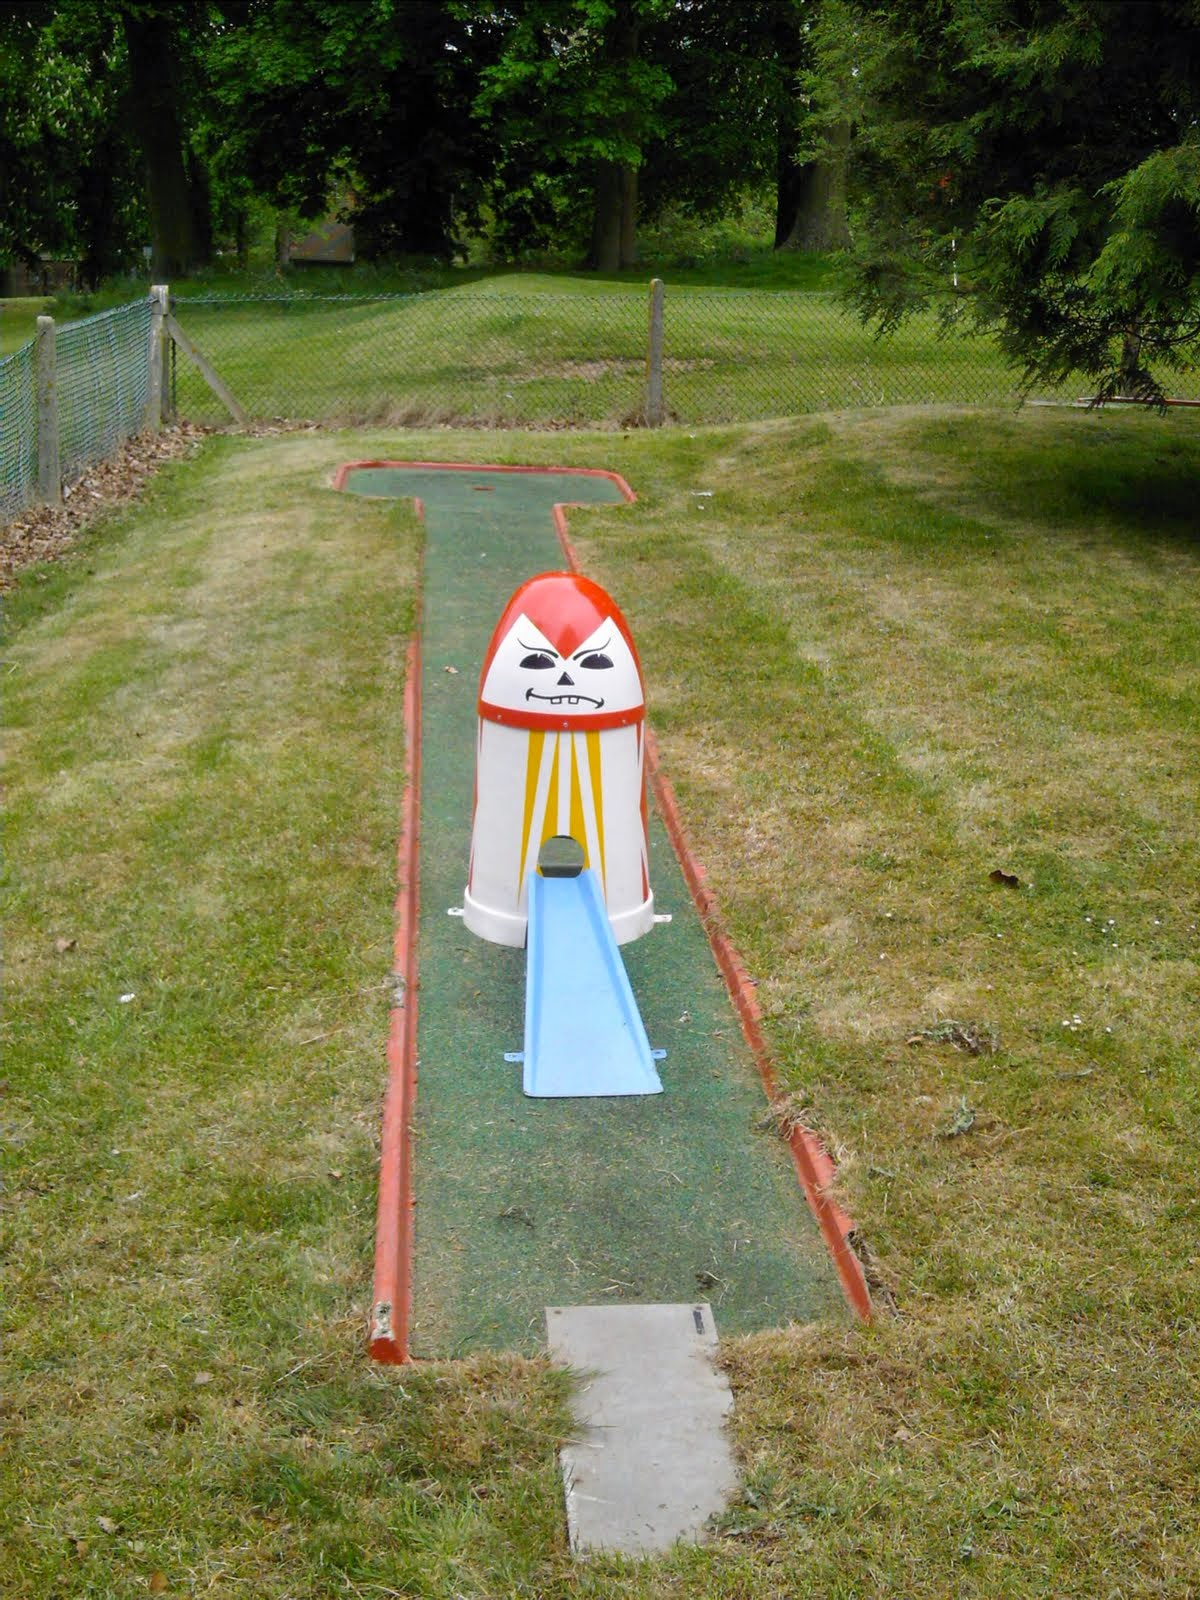 Hole 1 of the Crazy Golf course in Luton's Wardown Park as it used to look in May 2007